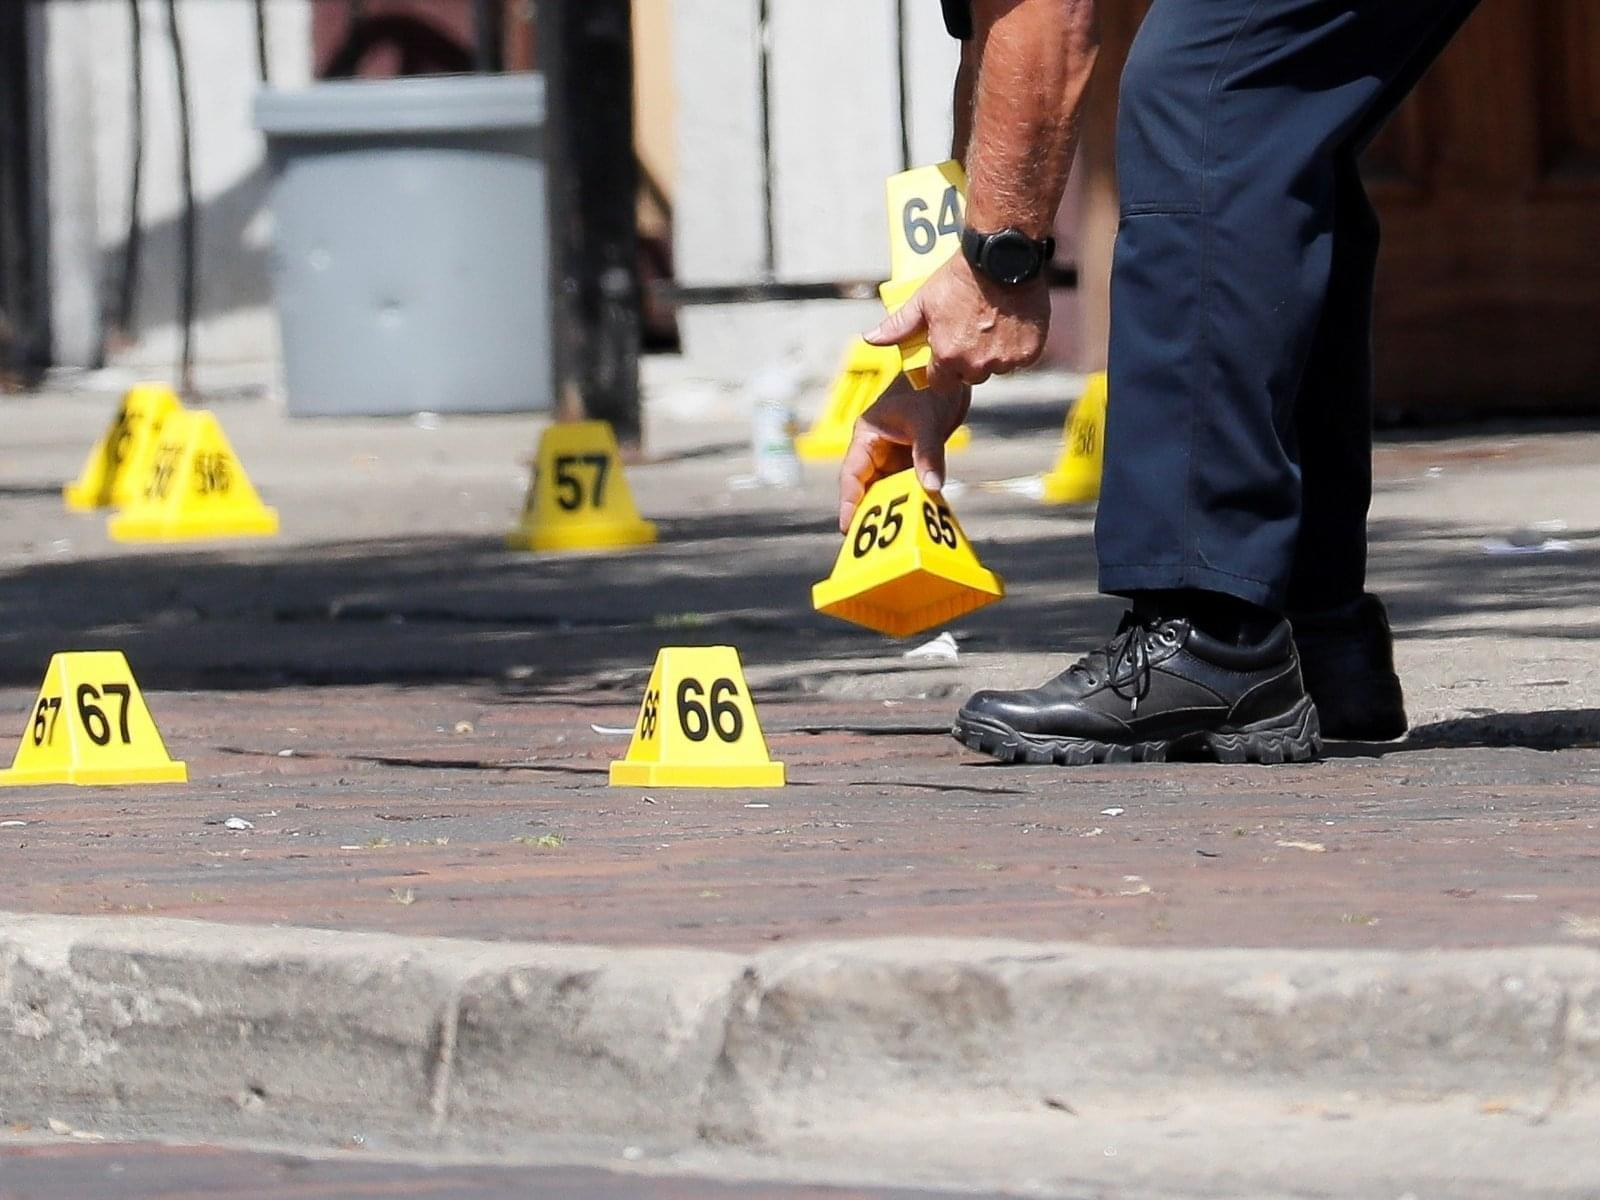 Authorities remove evidence markers